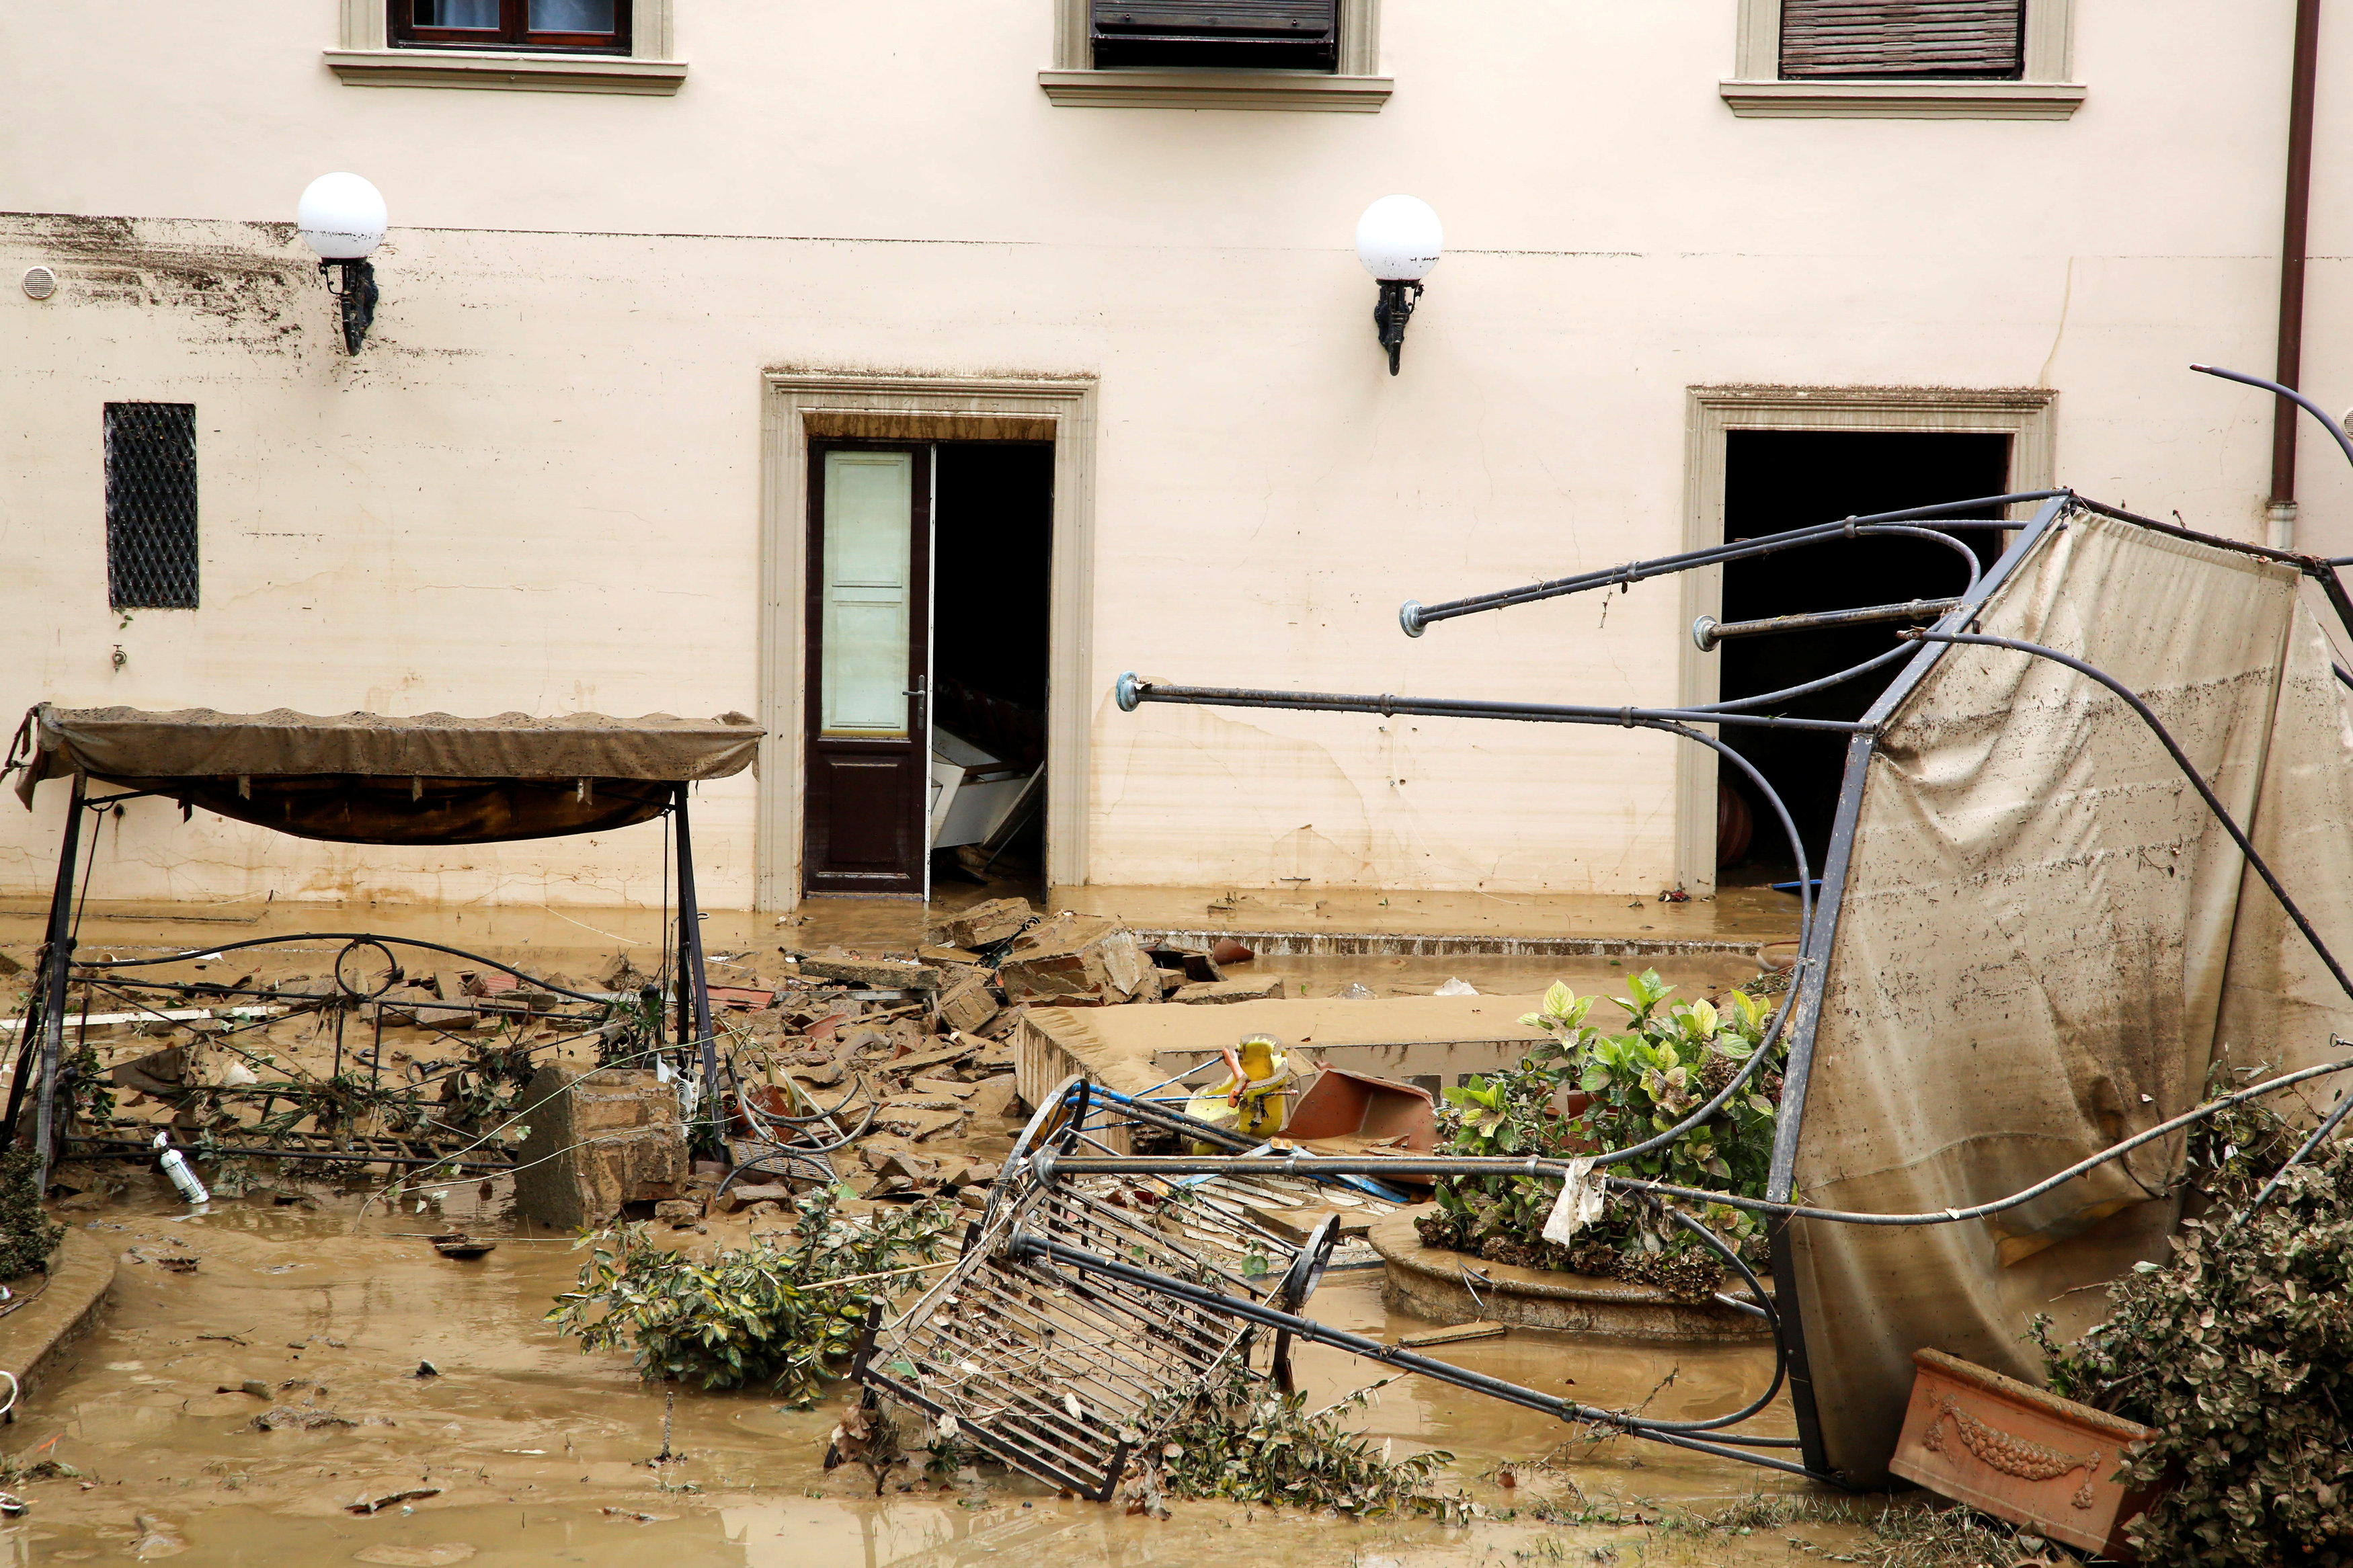 2017 09 10T120847Z 2034862273 RC1114AD8A20 RTRMADP 3 ITALY FLOODS TUSCANY